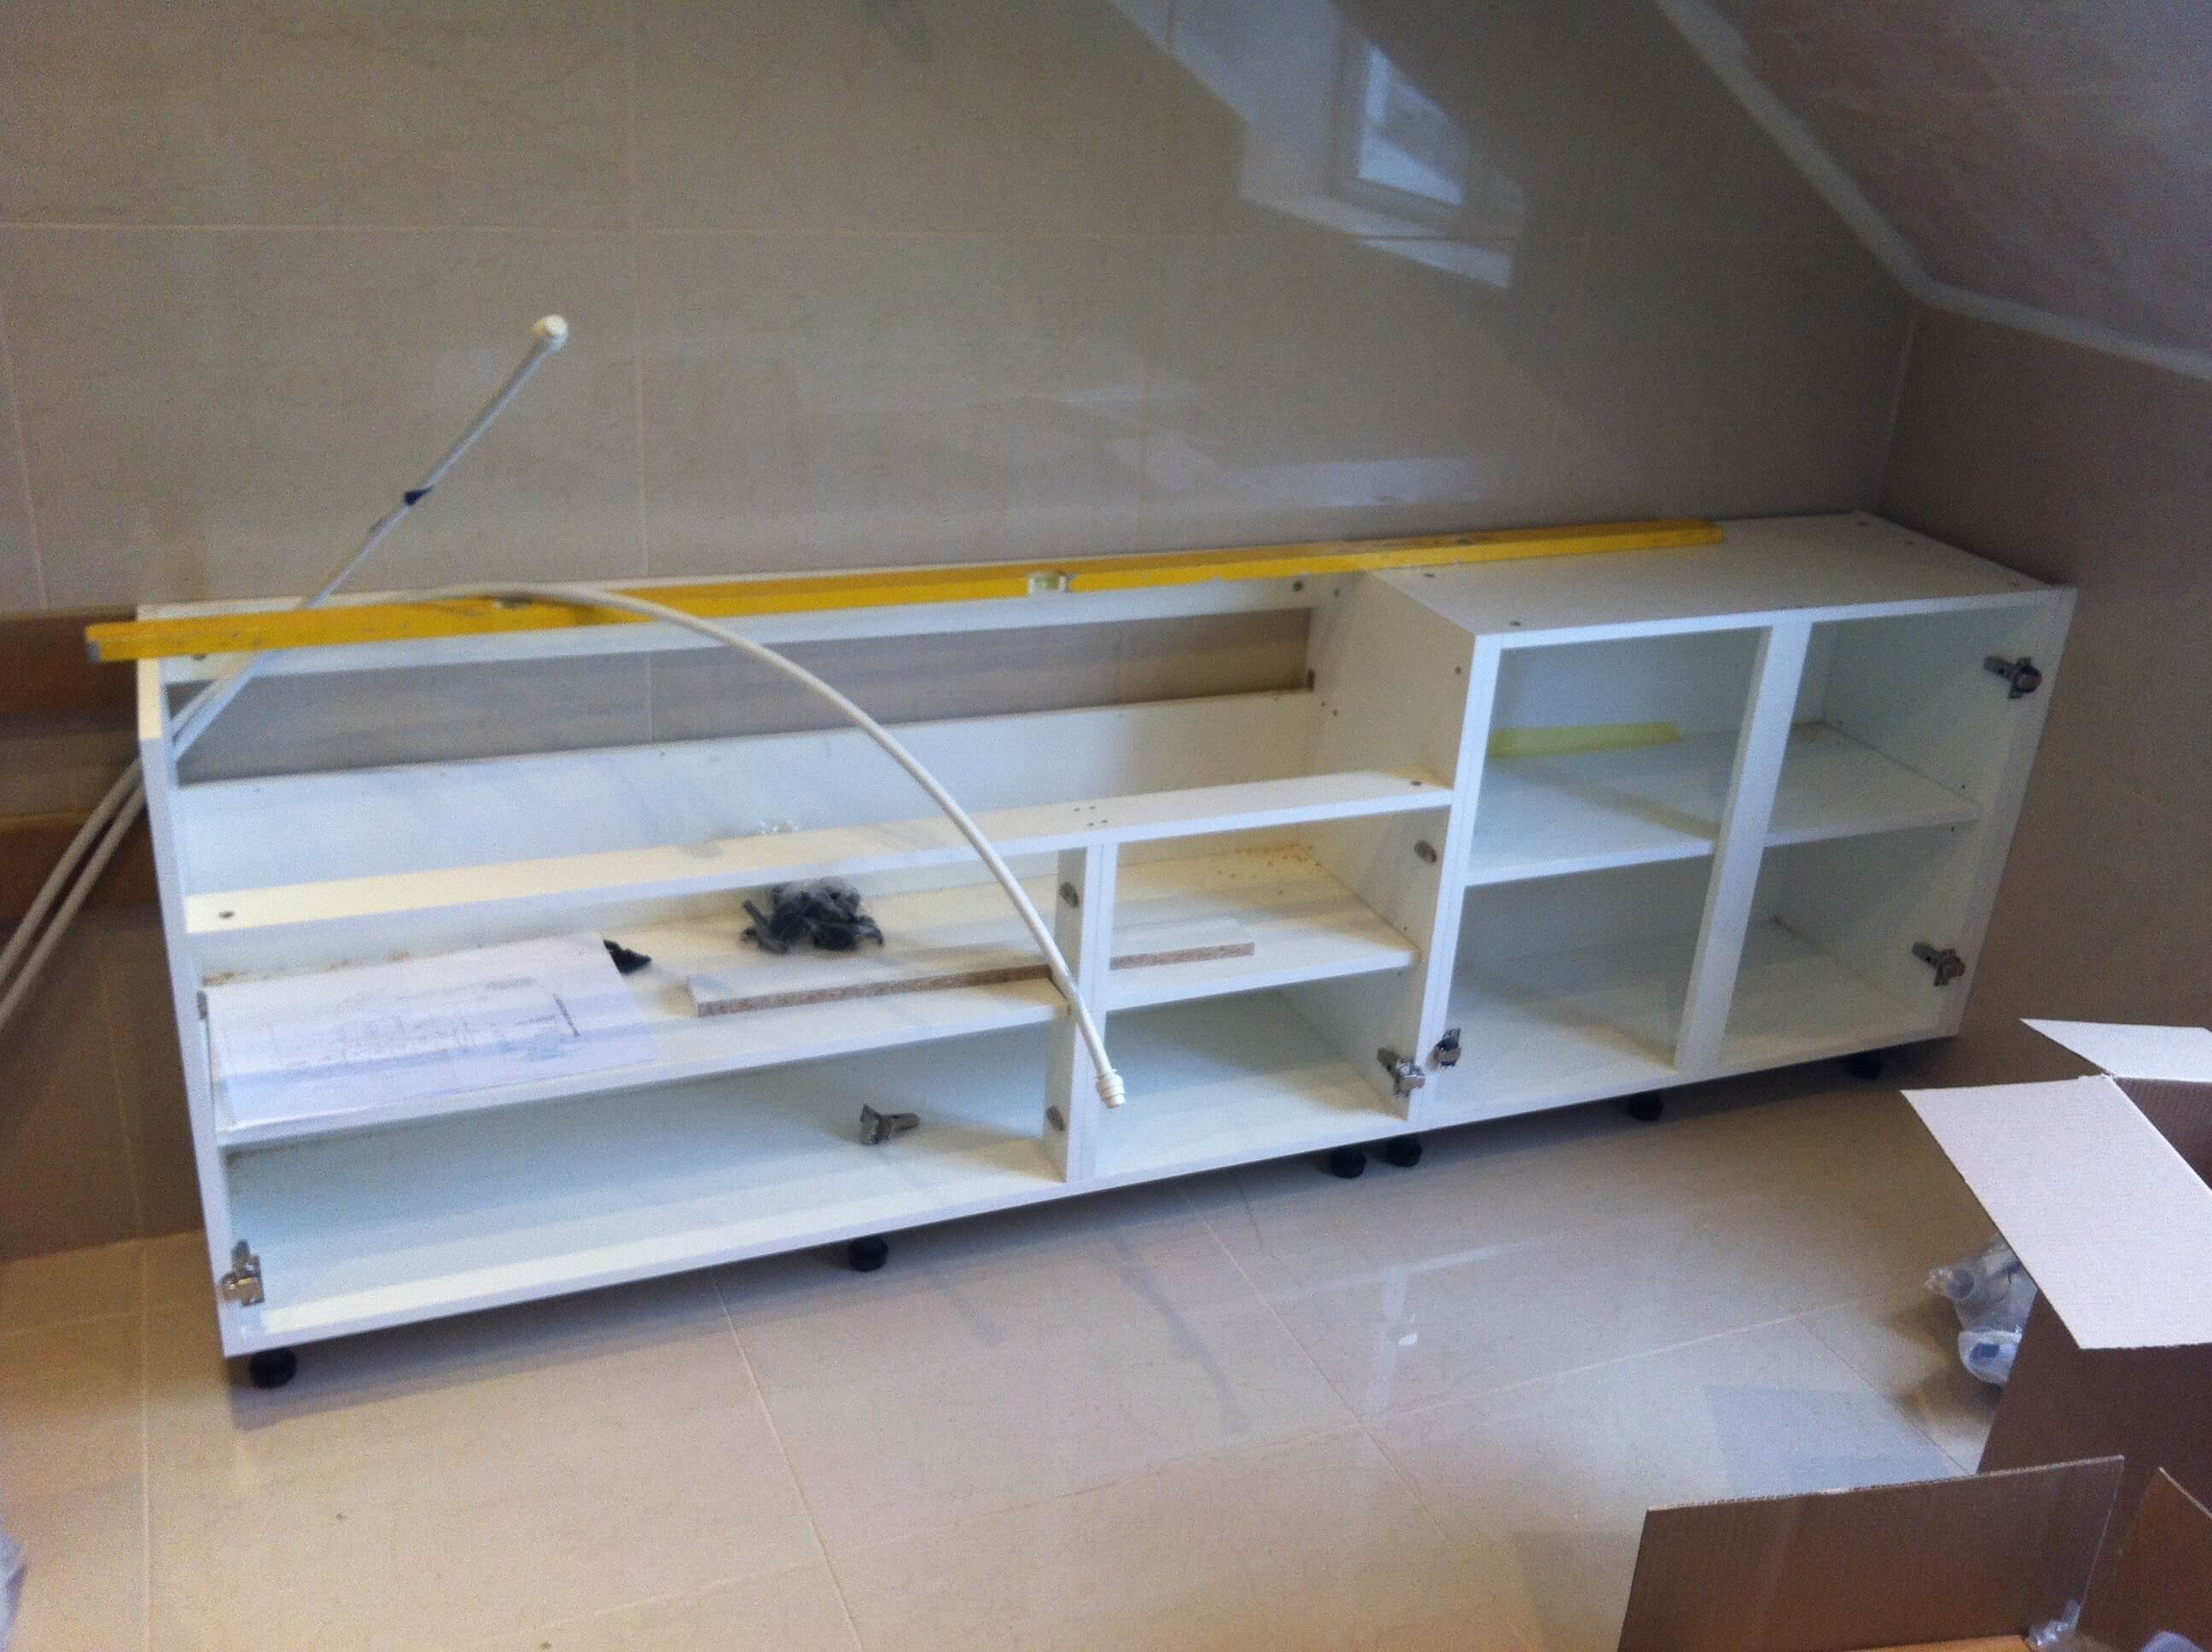 Units for the sinks and cupboards